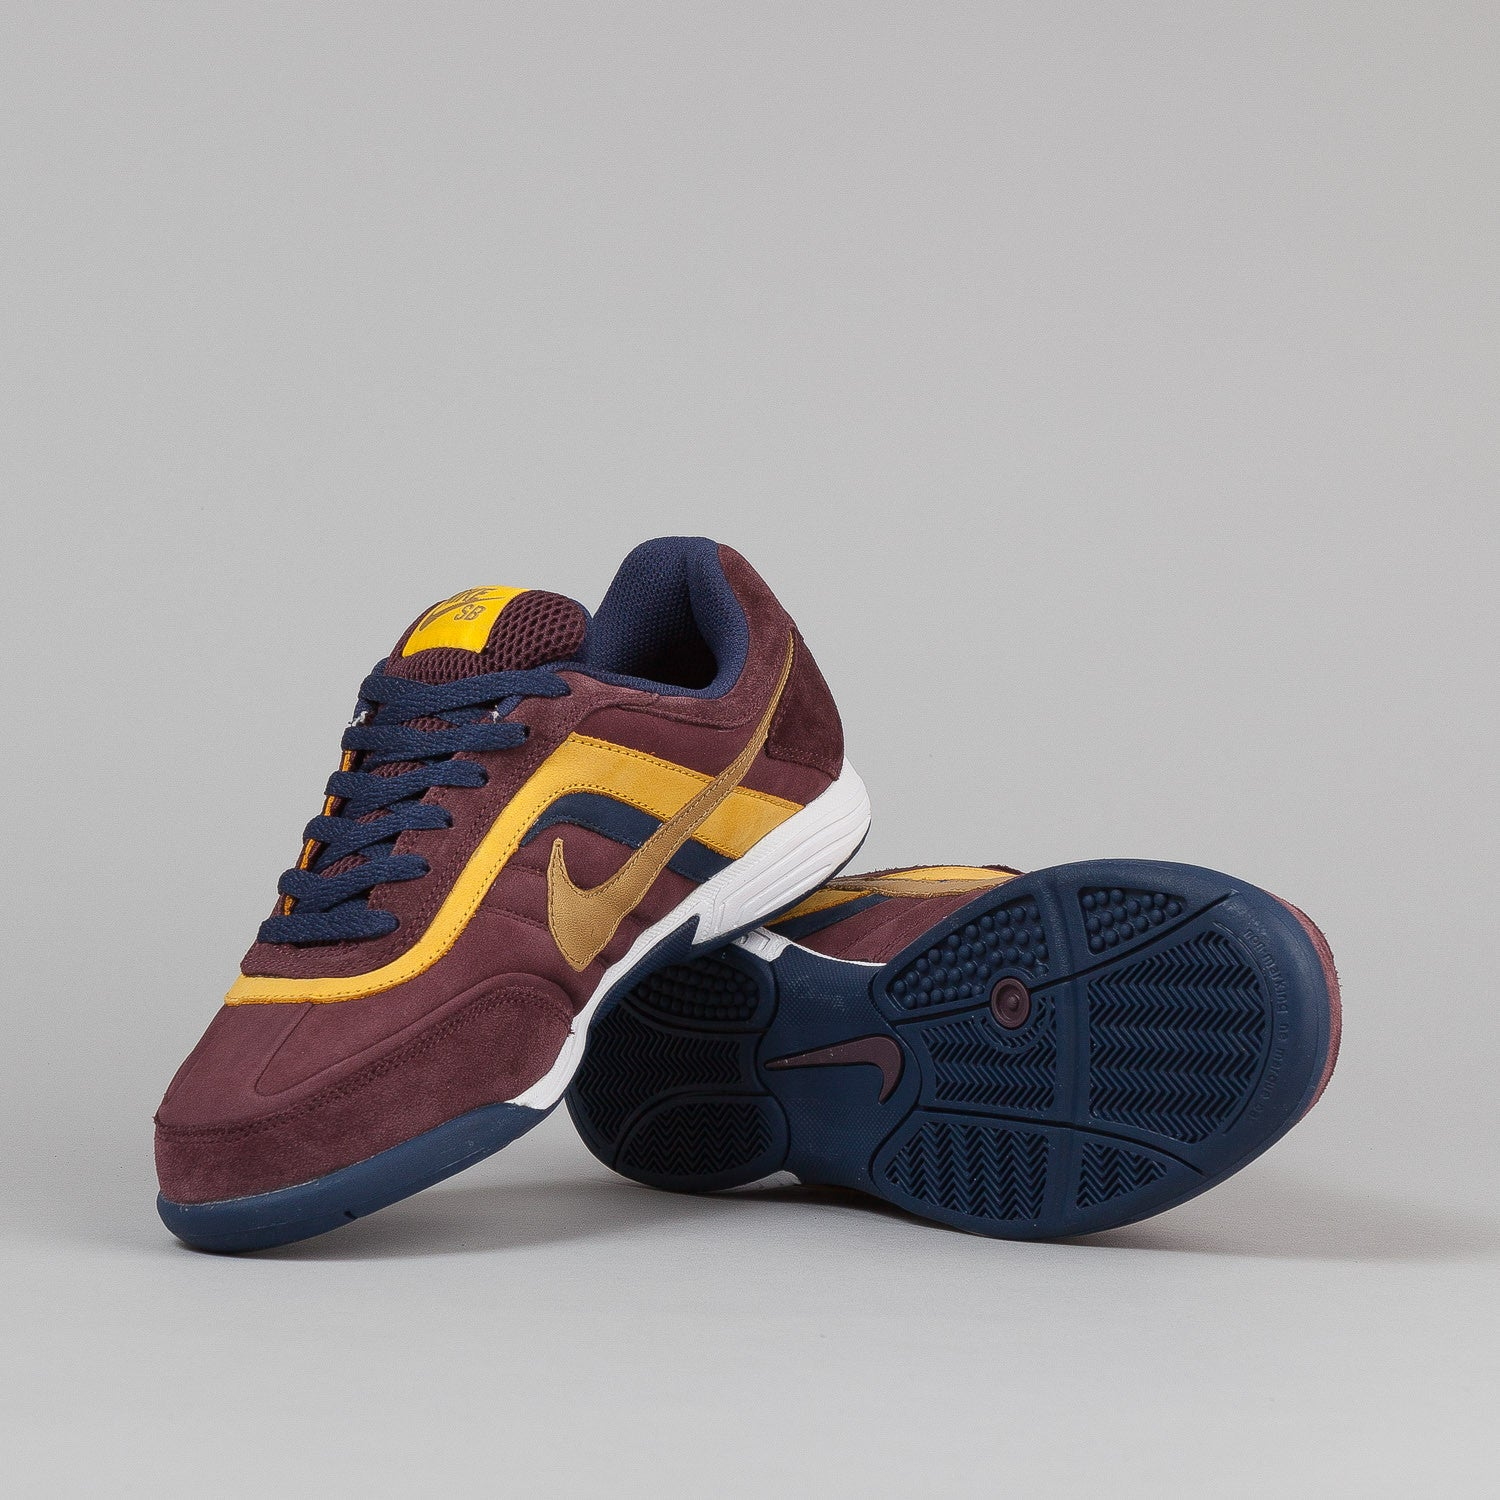 Nike SB Air Abington Shoes - Deep Burgundy / Metallic Gold